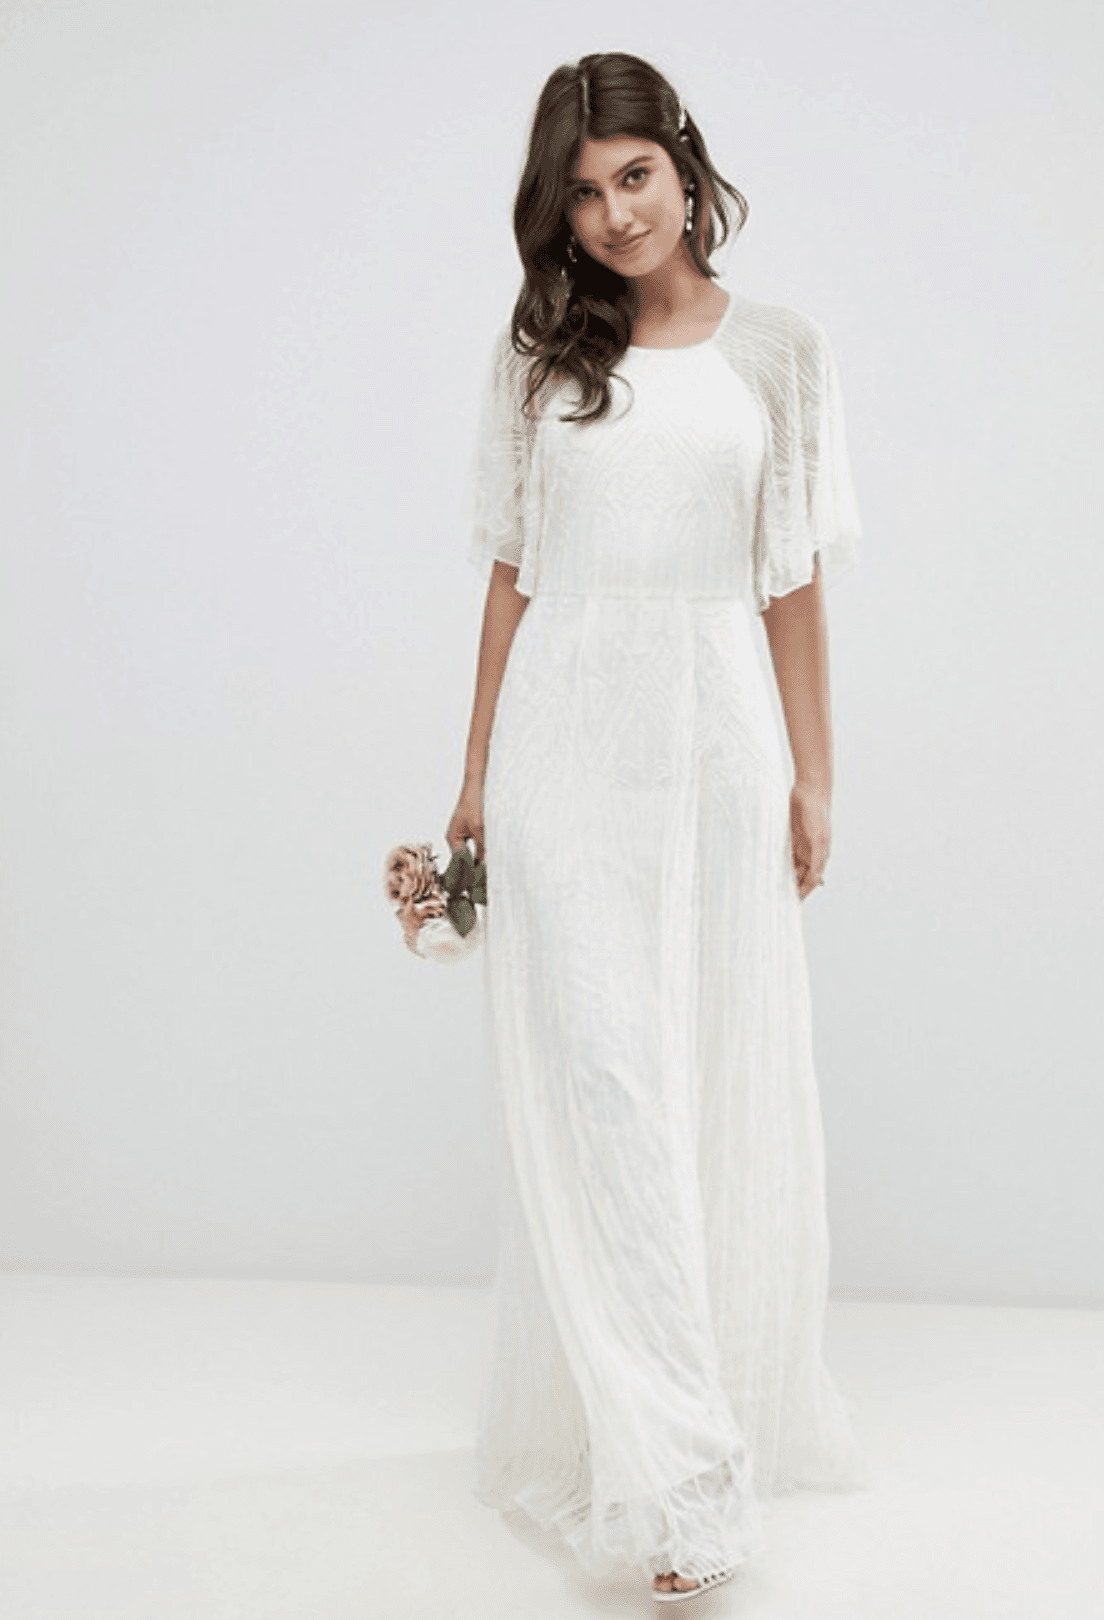 Where To Buy A Cheap And Affordable Wedding Dress On A Tight Budget In 2020 Embellished Wedding Dress Art Deco Wedding Dress Deco Wedding Dress